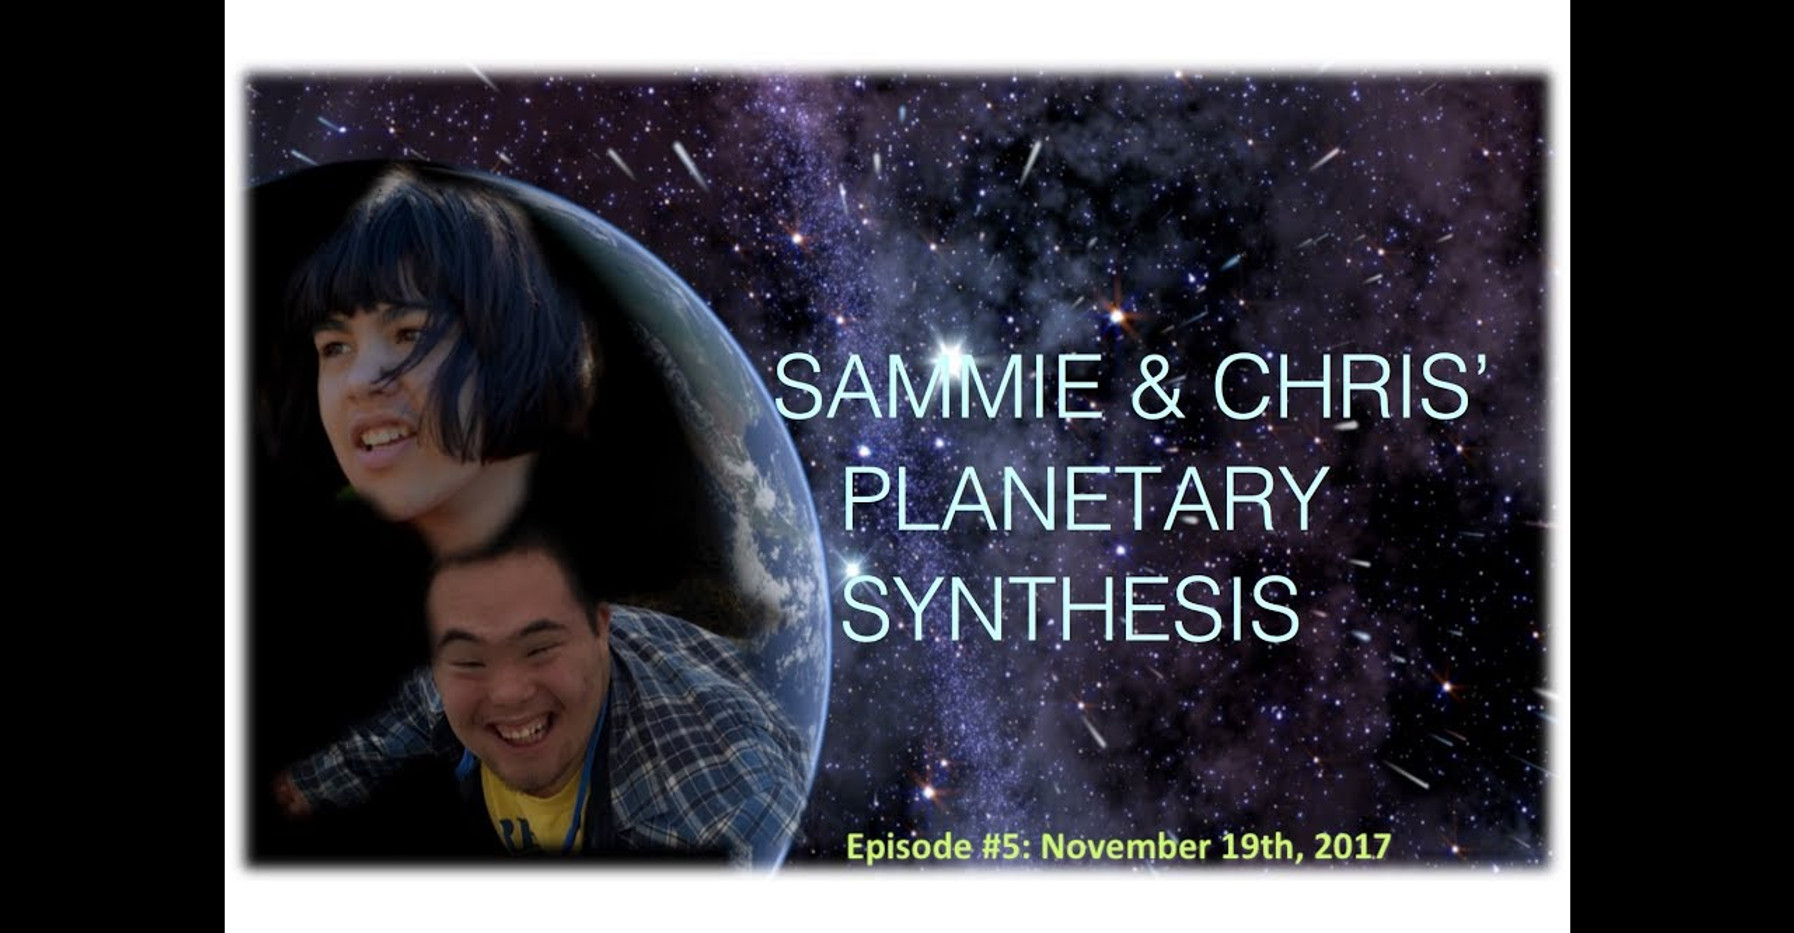 Sam & Chris' Planetary Synthesis Episode #5